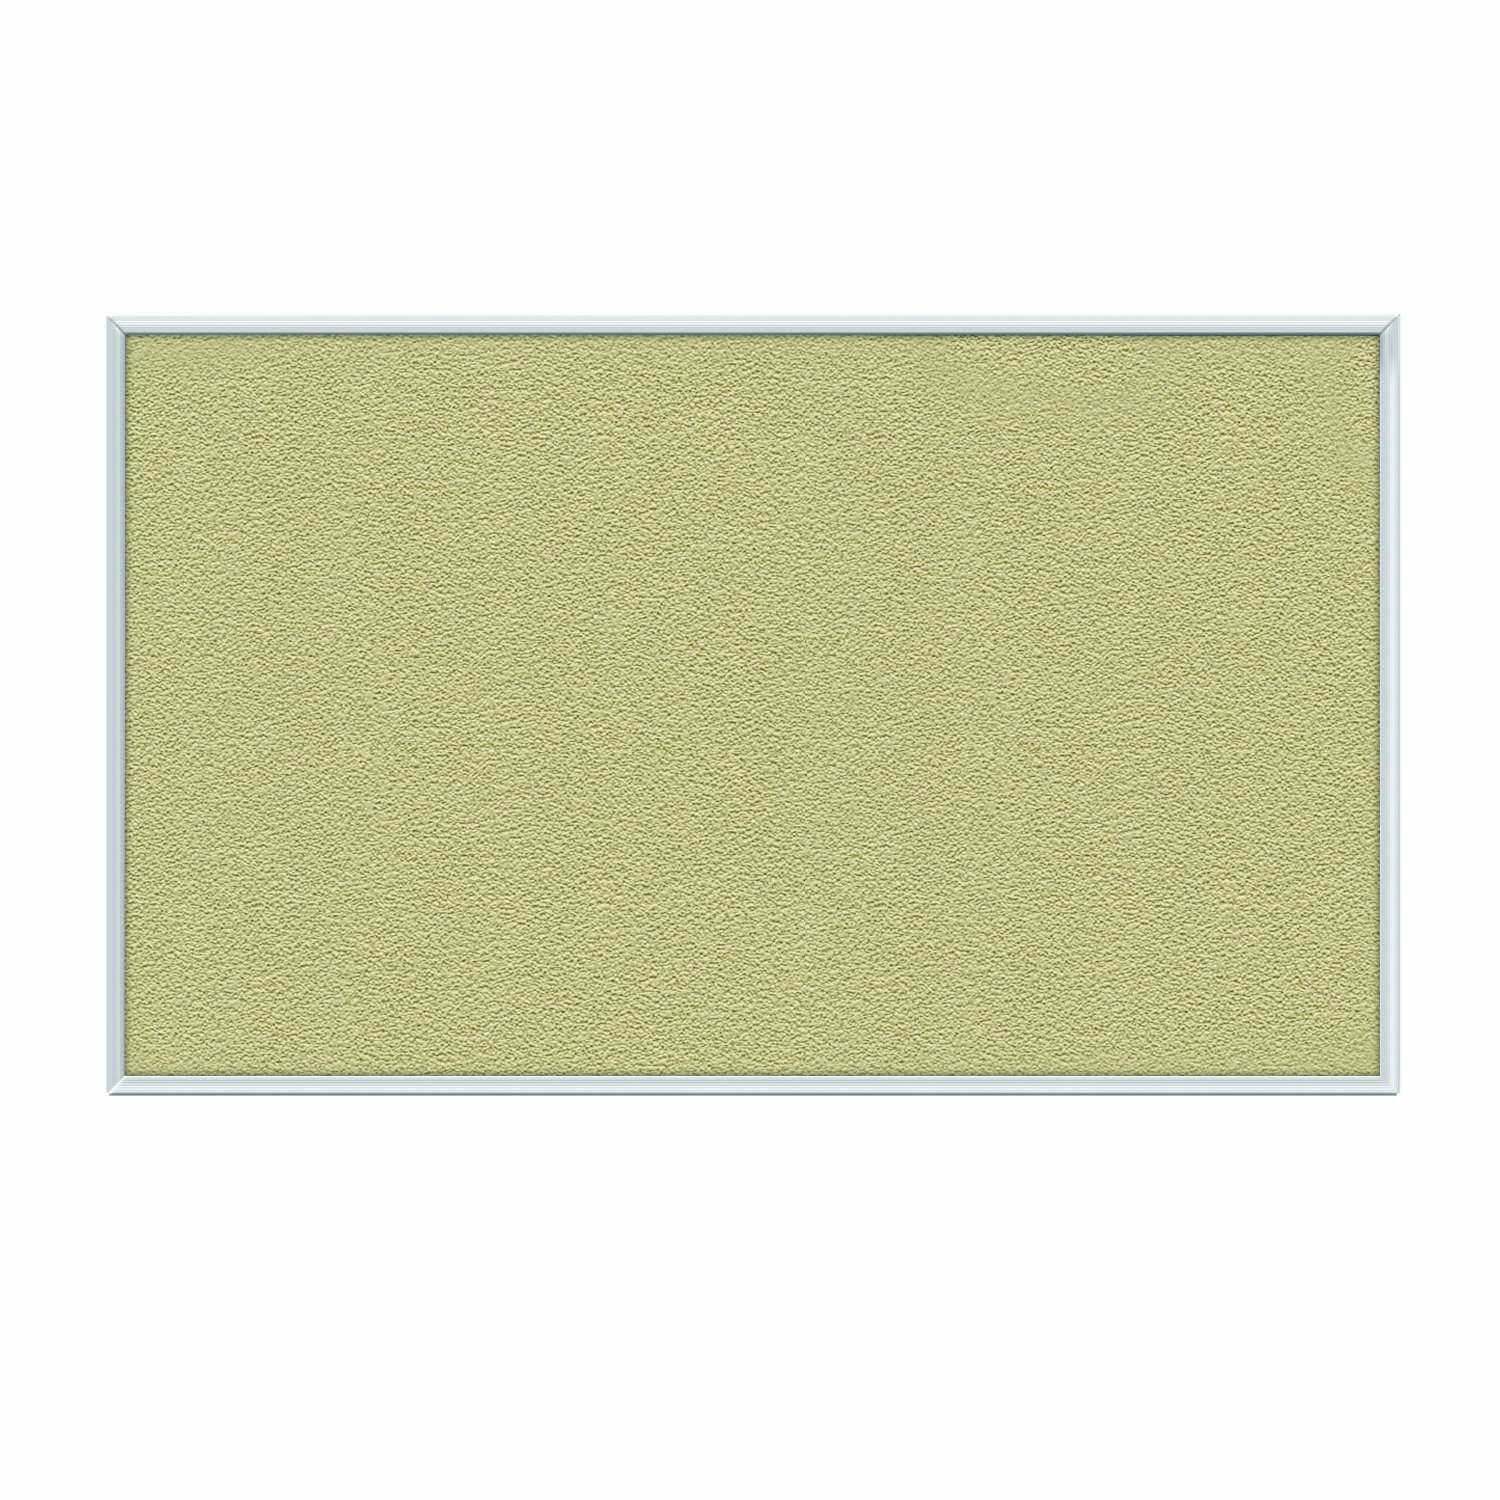 Ghent Caramel Vinyl Bulletin Board, 4.5'' x 6.5'', Aluminum Frame, Made in the USA by Ghent